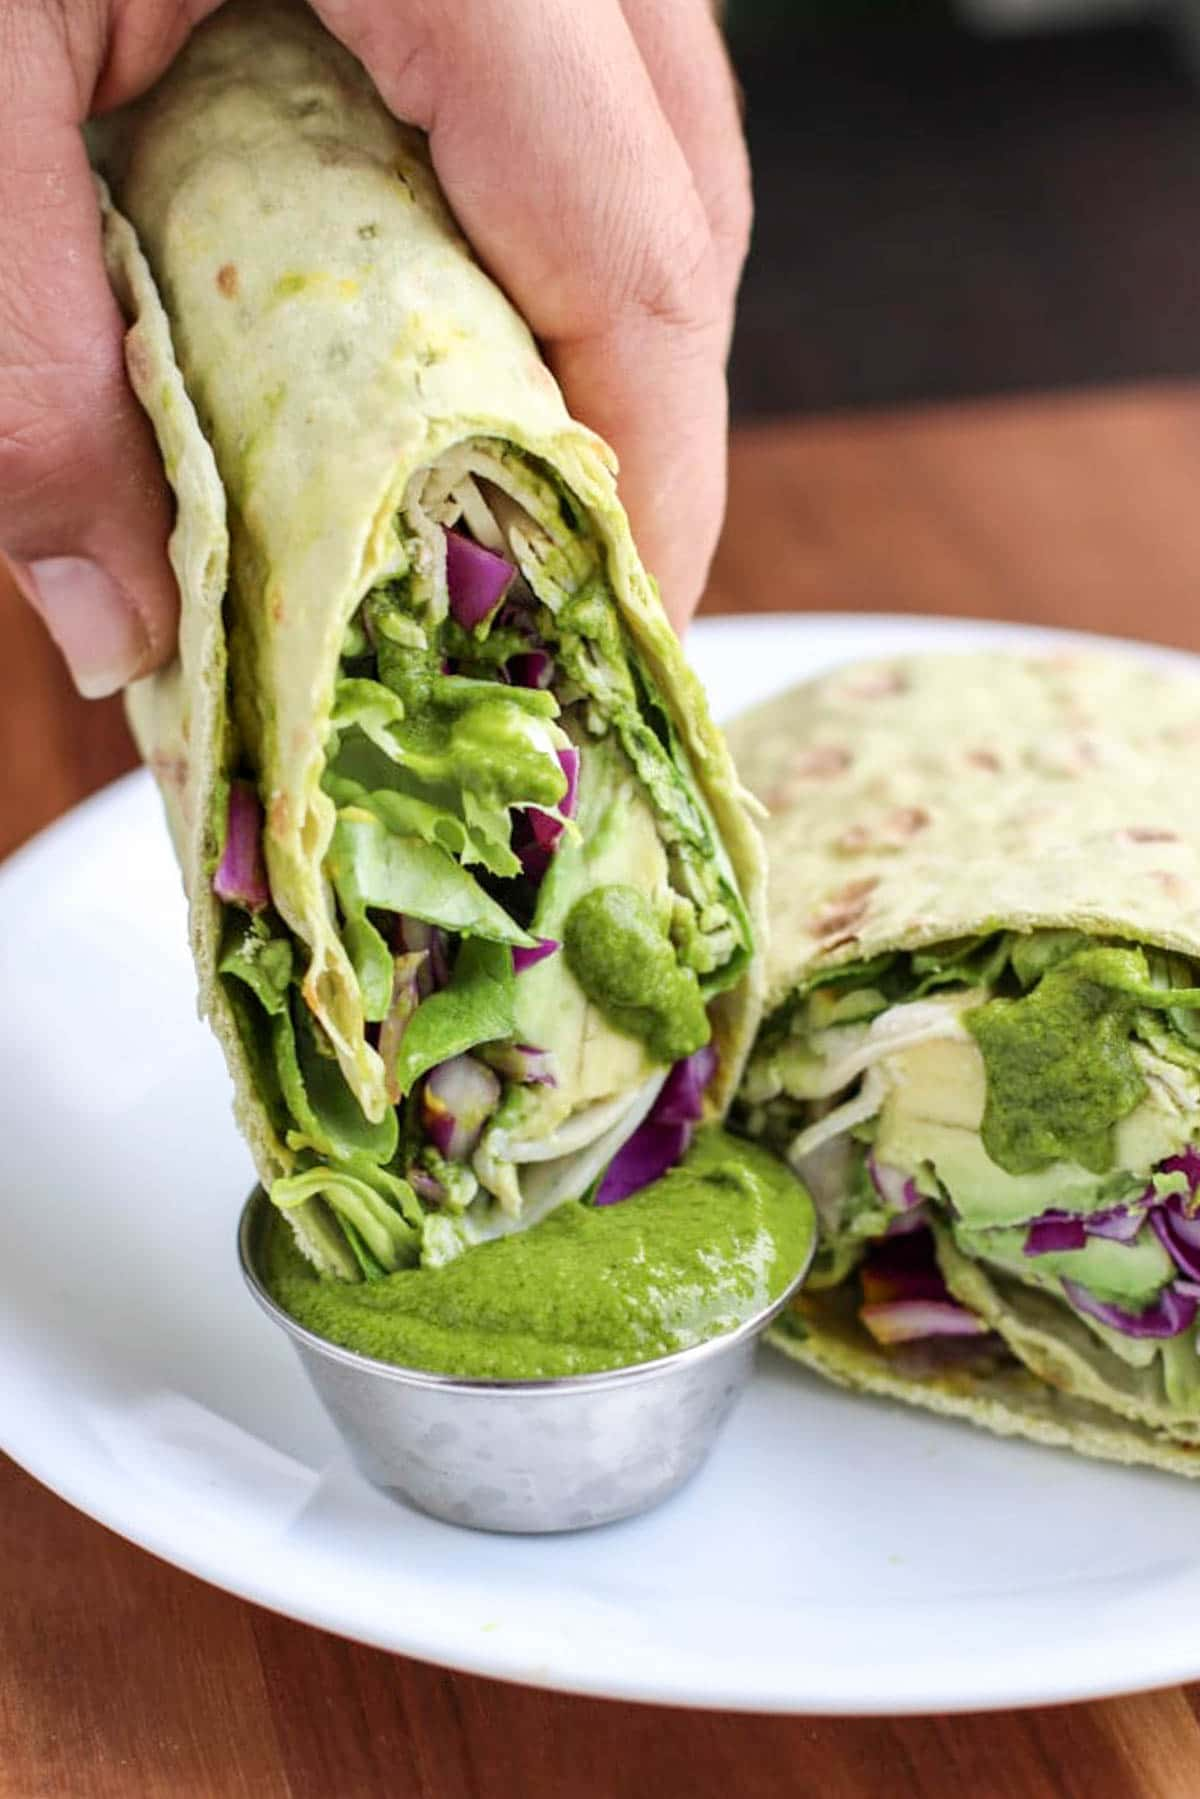 A hand dipping half a wrap into green sauce on a white plate.